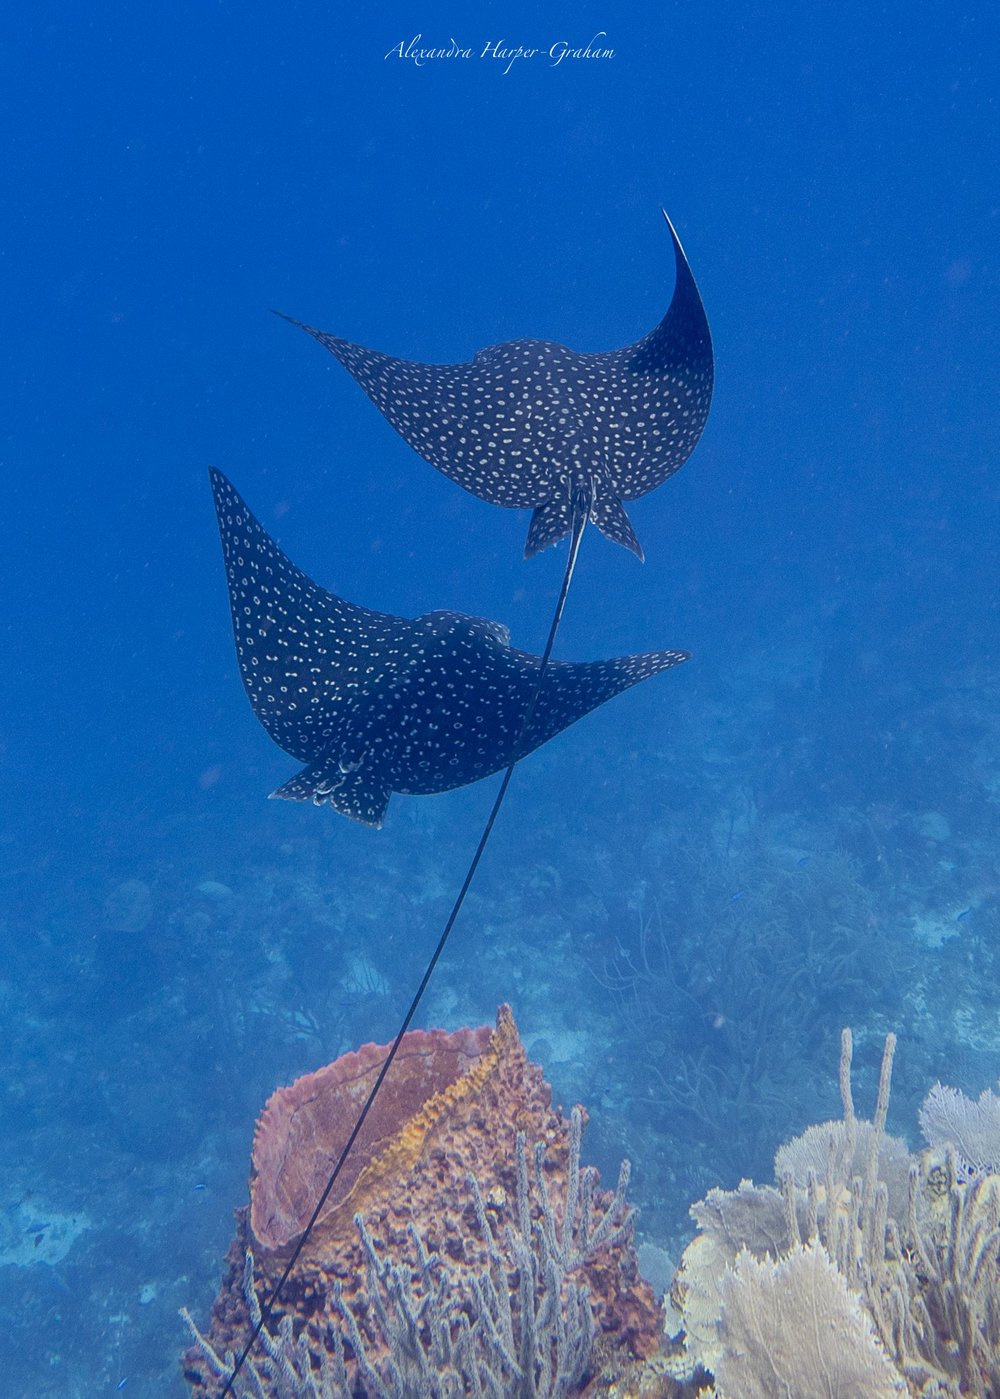 This picture isn't relevant but people like eagle rays